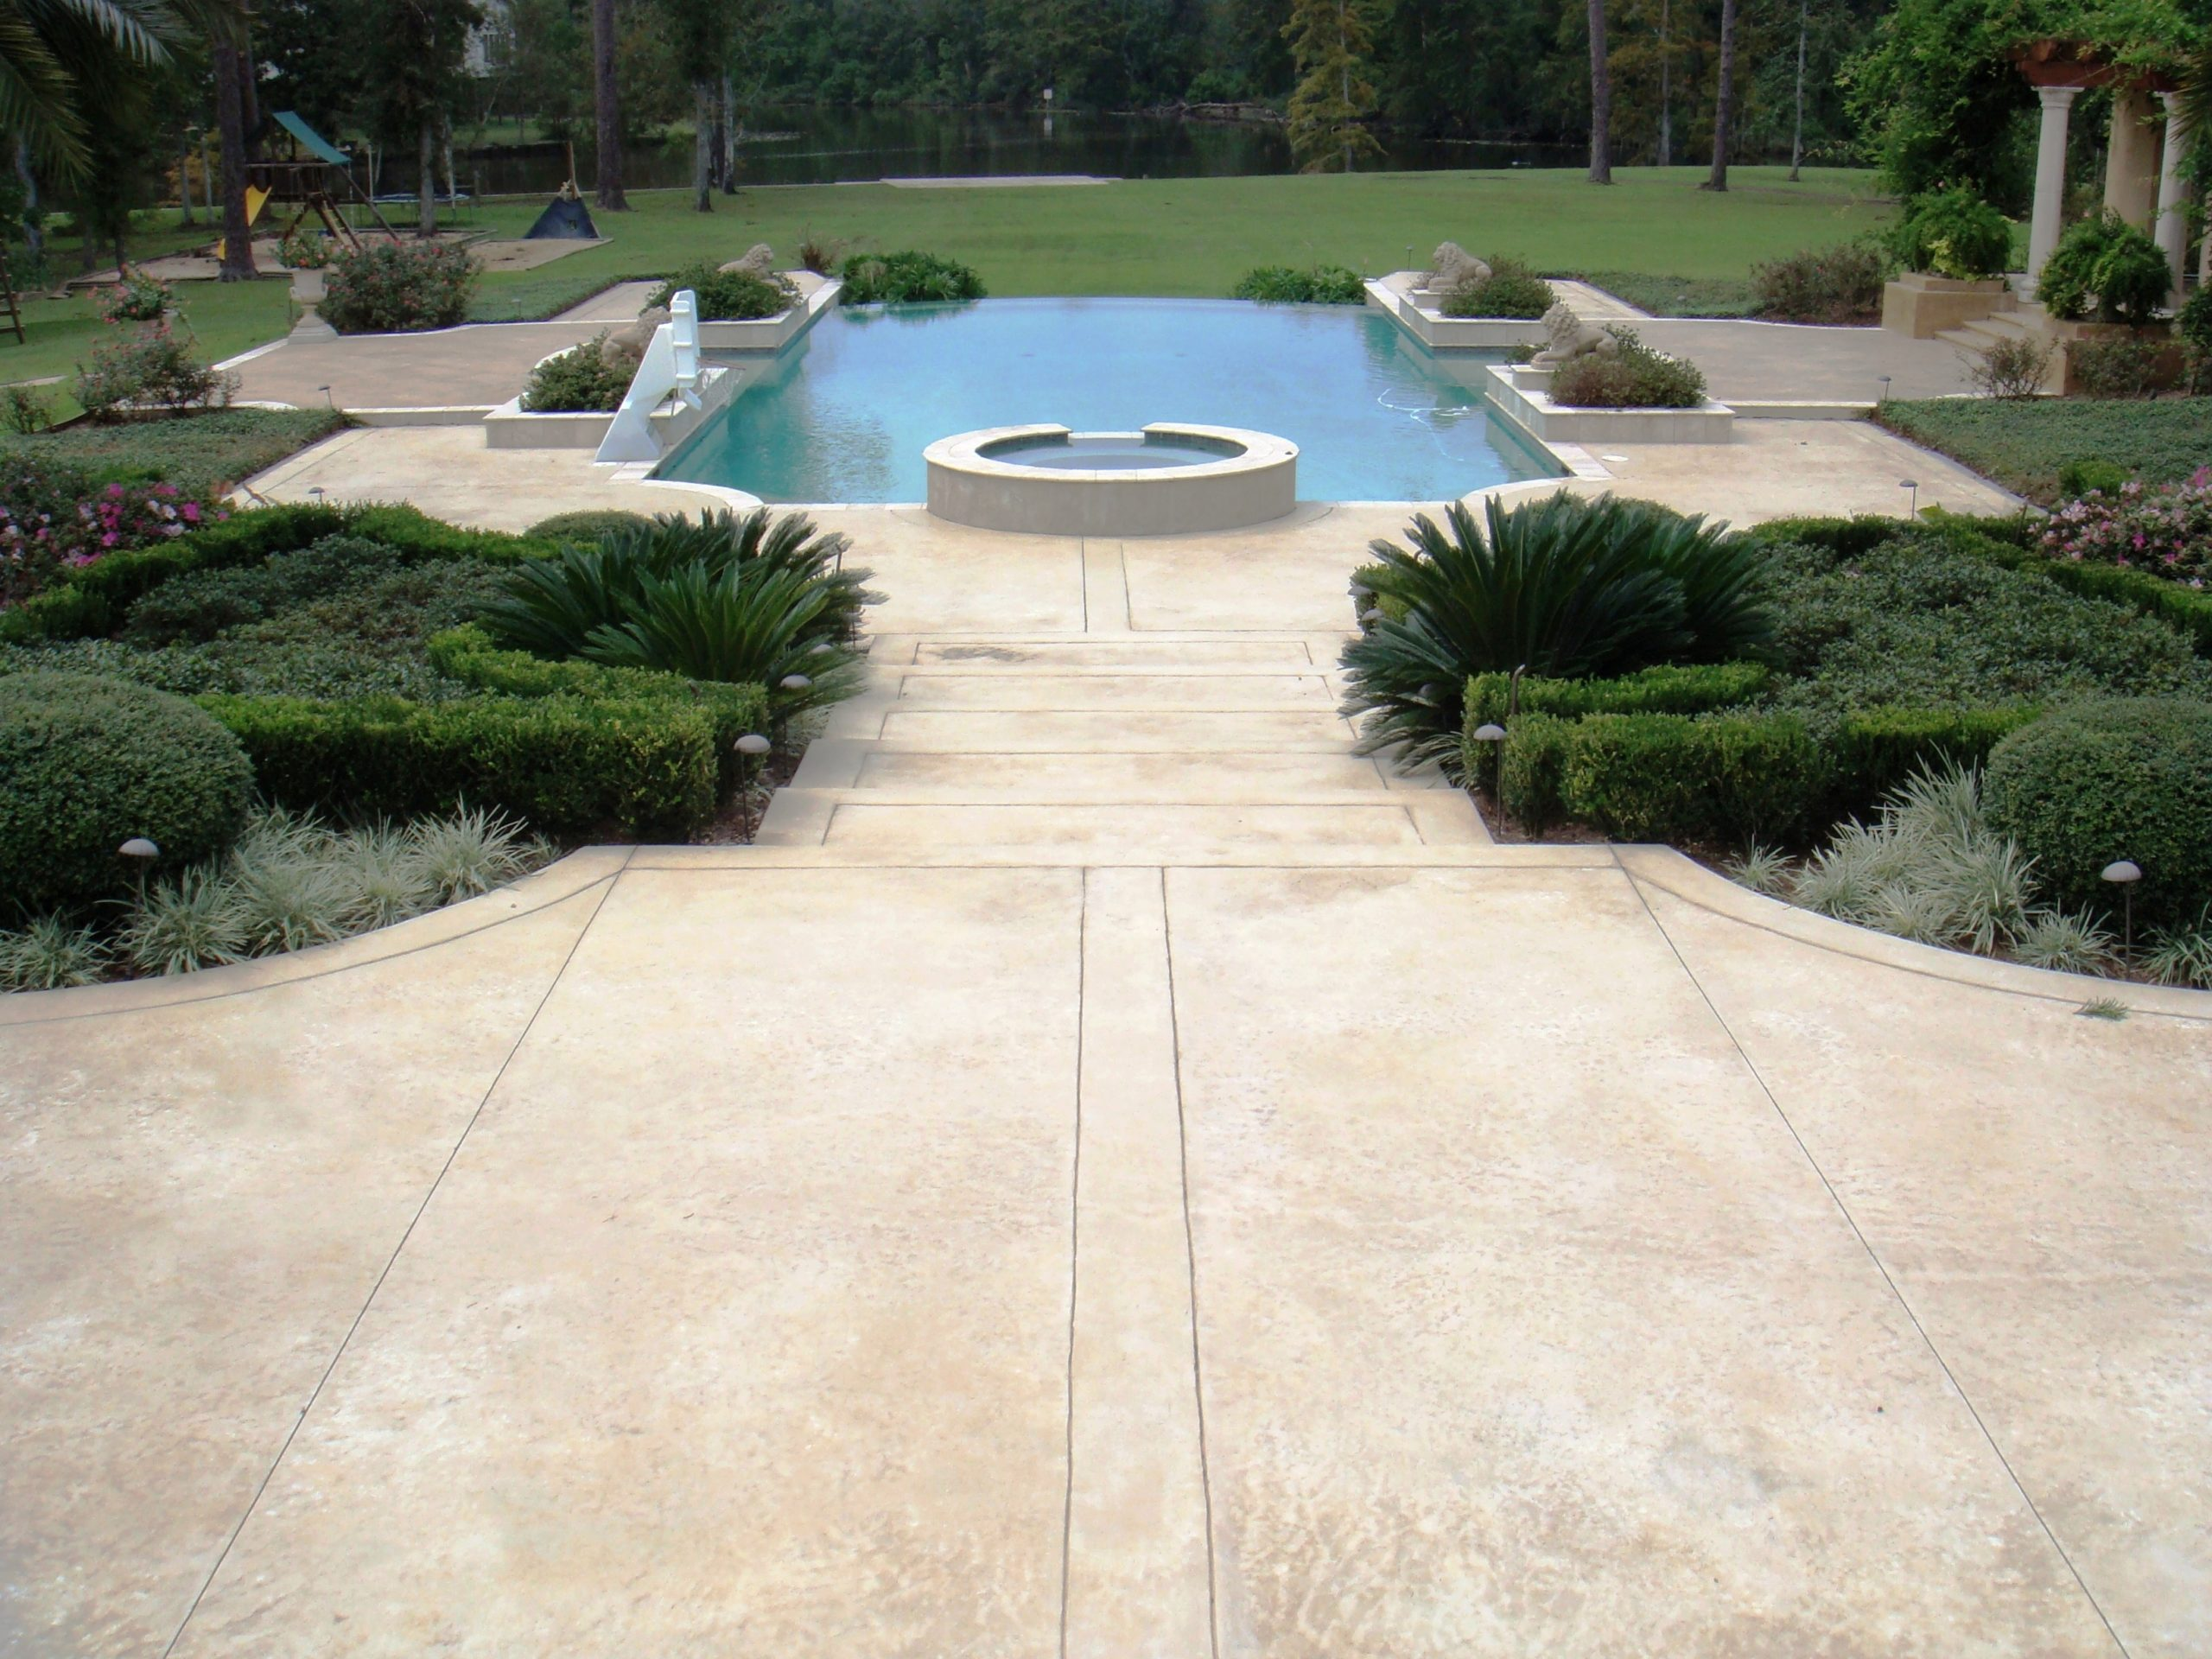 https://epoxy-companies.com/wp-content/uploads/2020/05/large-patio-and-pool-deck-scaled.jpg